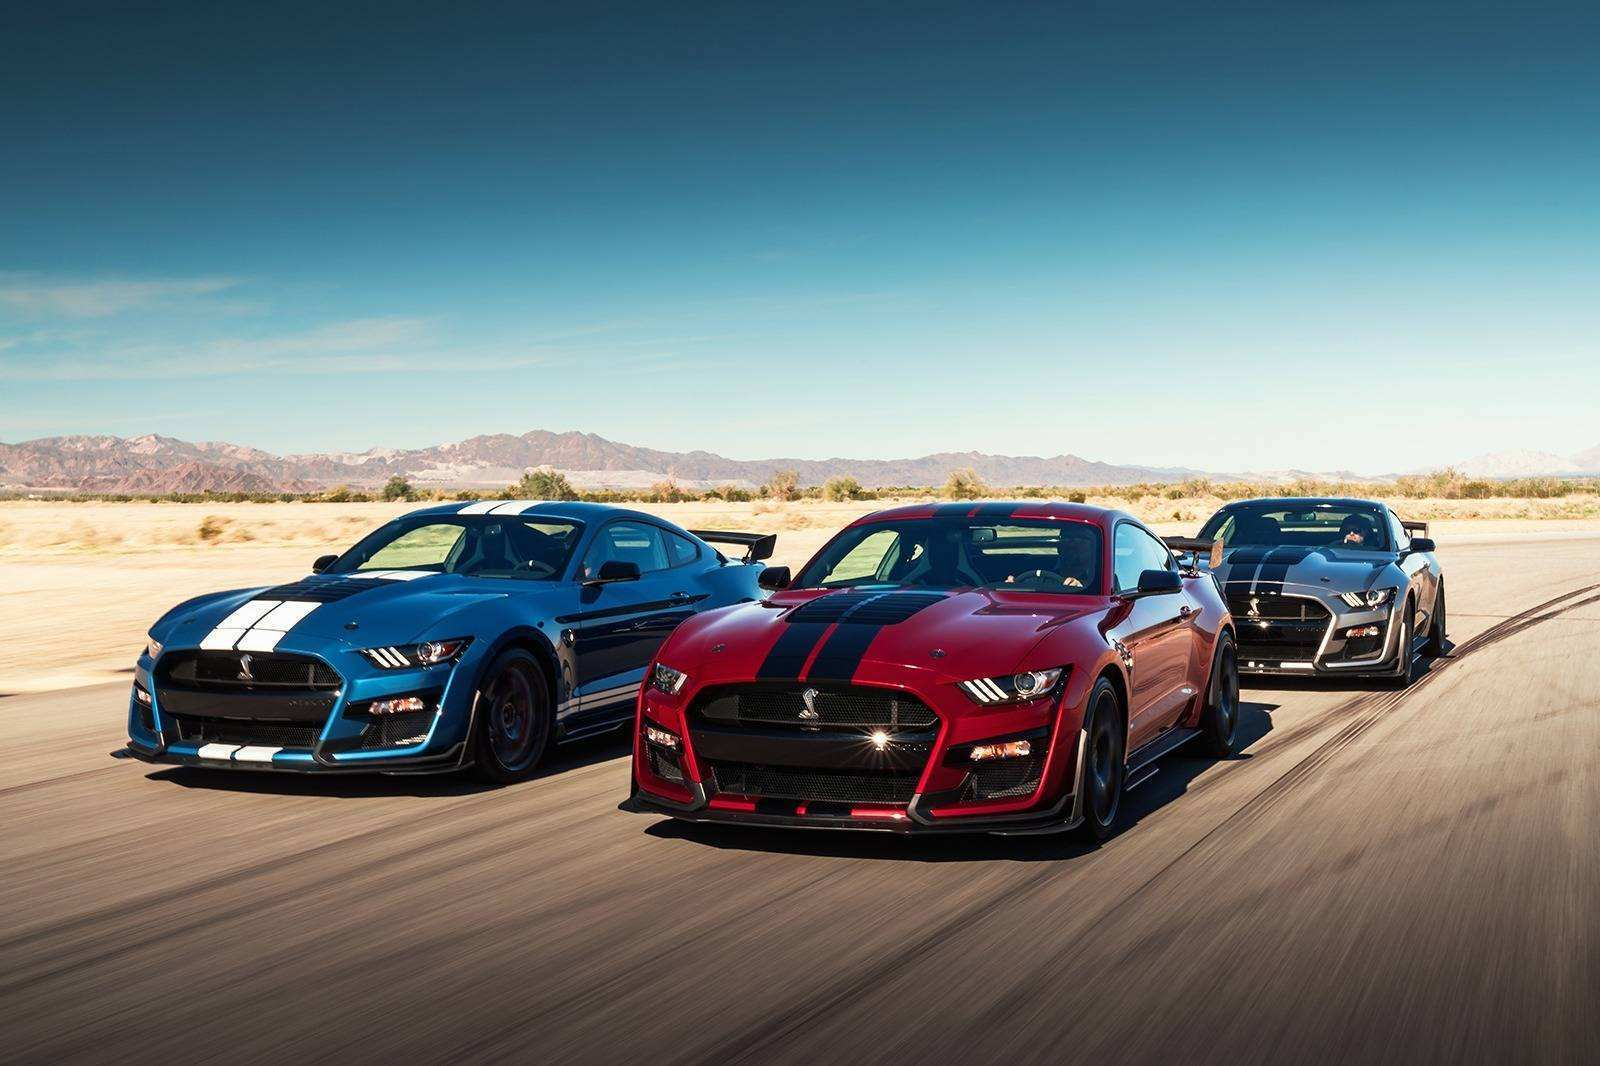 23 Gallery of 2020 Ford Shelby Gt500 Price Images with 2020 Ford Shelby Gt500 Price